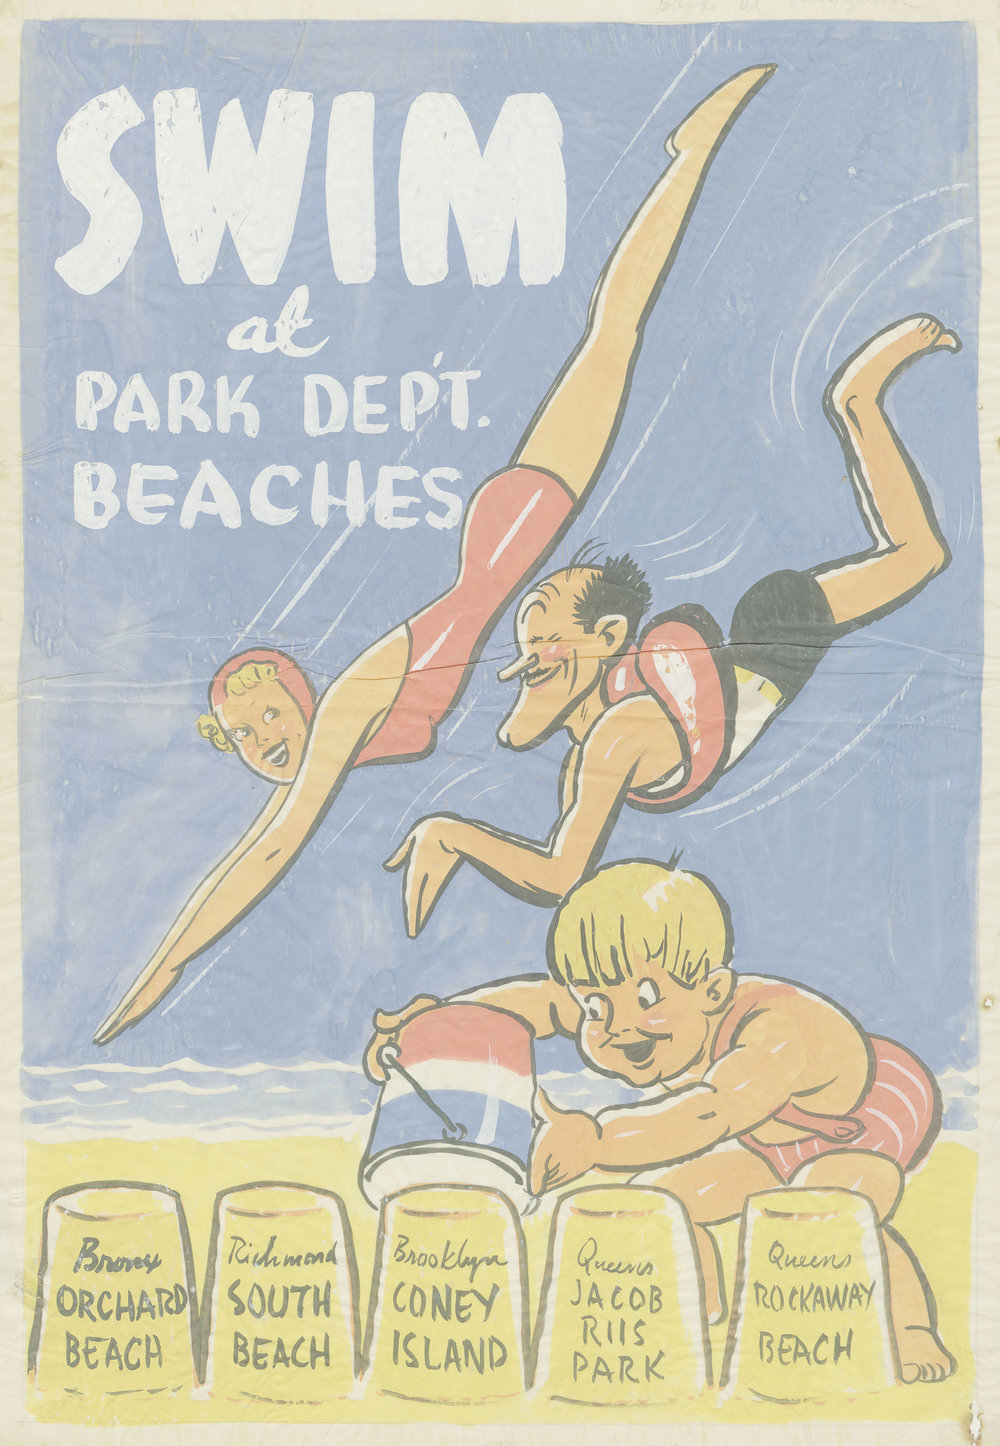 """Swim"" original art for subway, 1937. Tempura water color on tissue paper; artist unknown. Department of Parks General Files, NYC Municipal Archives.  A life-long swimmer, Parks Commissioner Robert Moses vastly expanded access to aquatic facilities for New Yorkers. In 1936, he opened ten new swimming pools and during his long tenure he built and improved public beaches throughout the city."